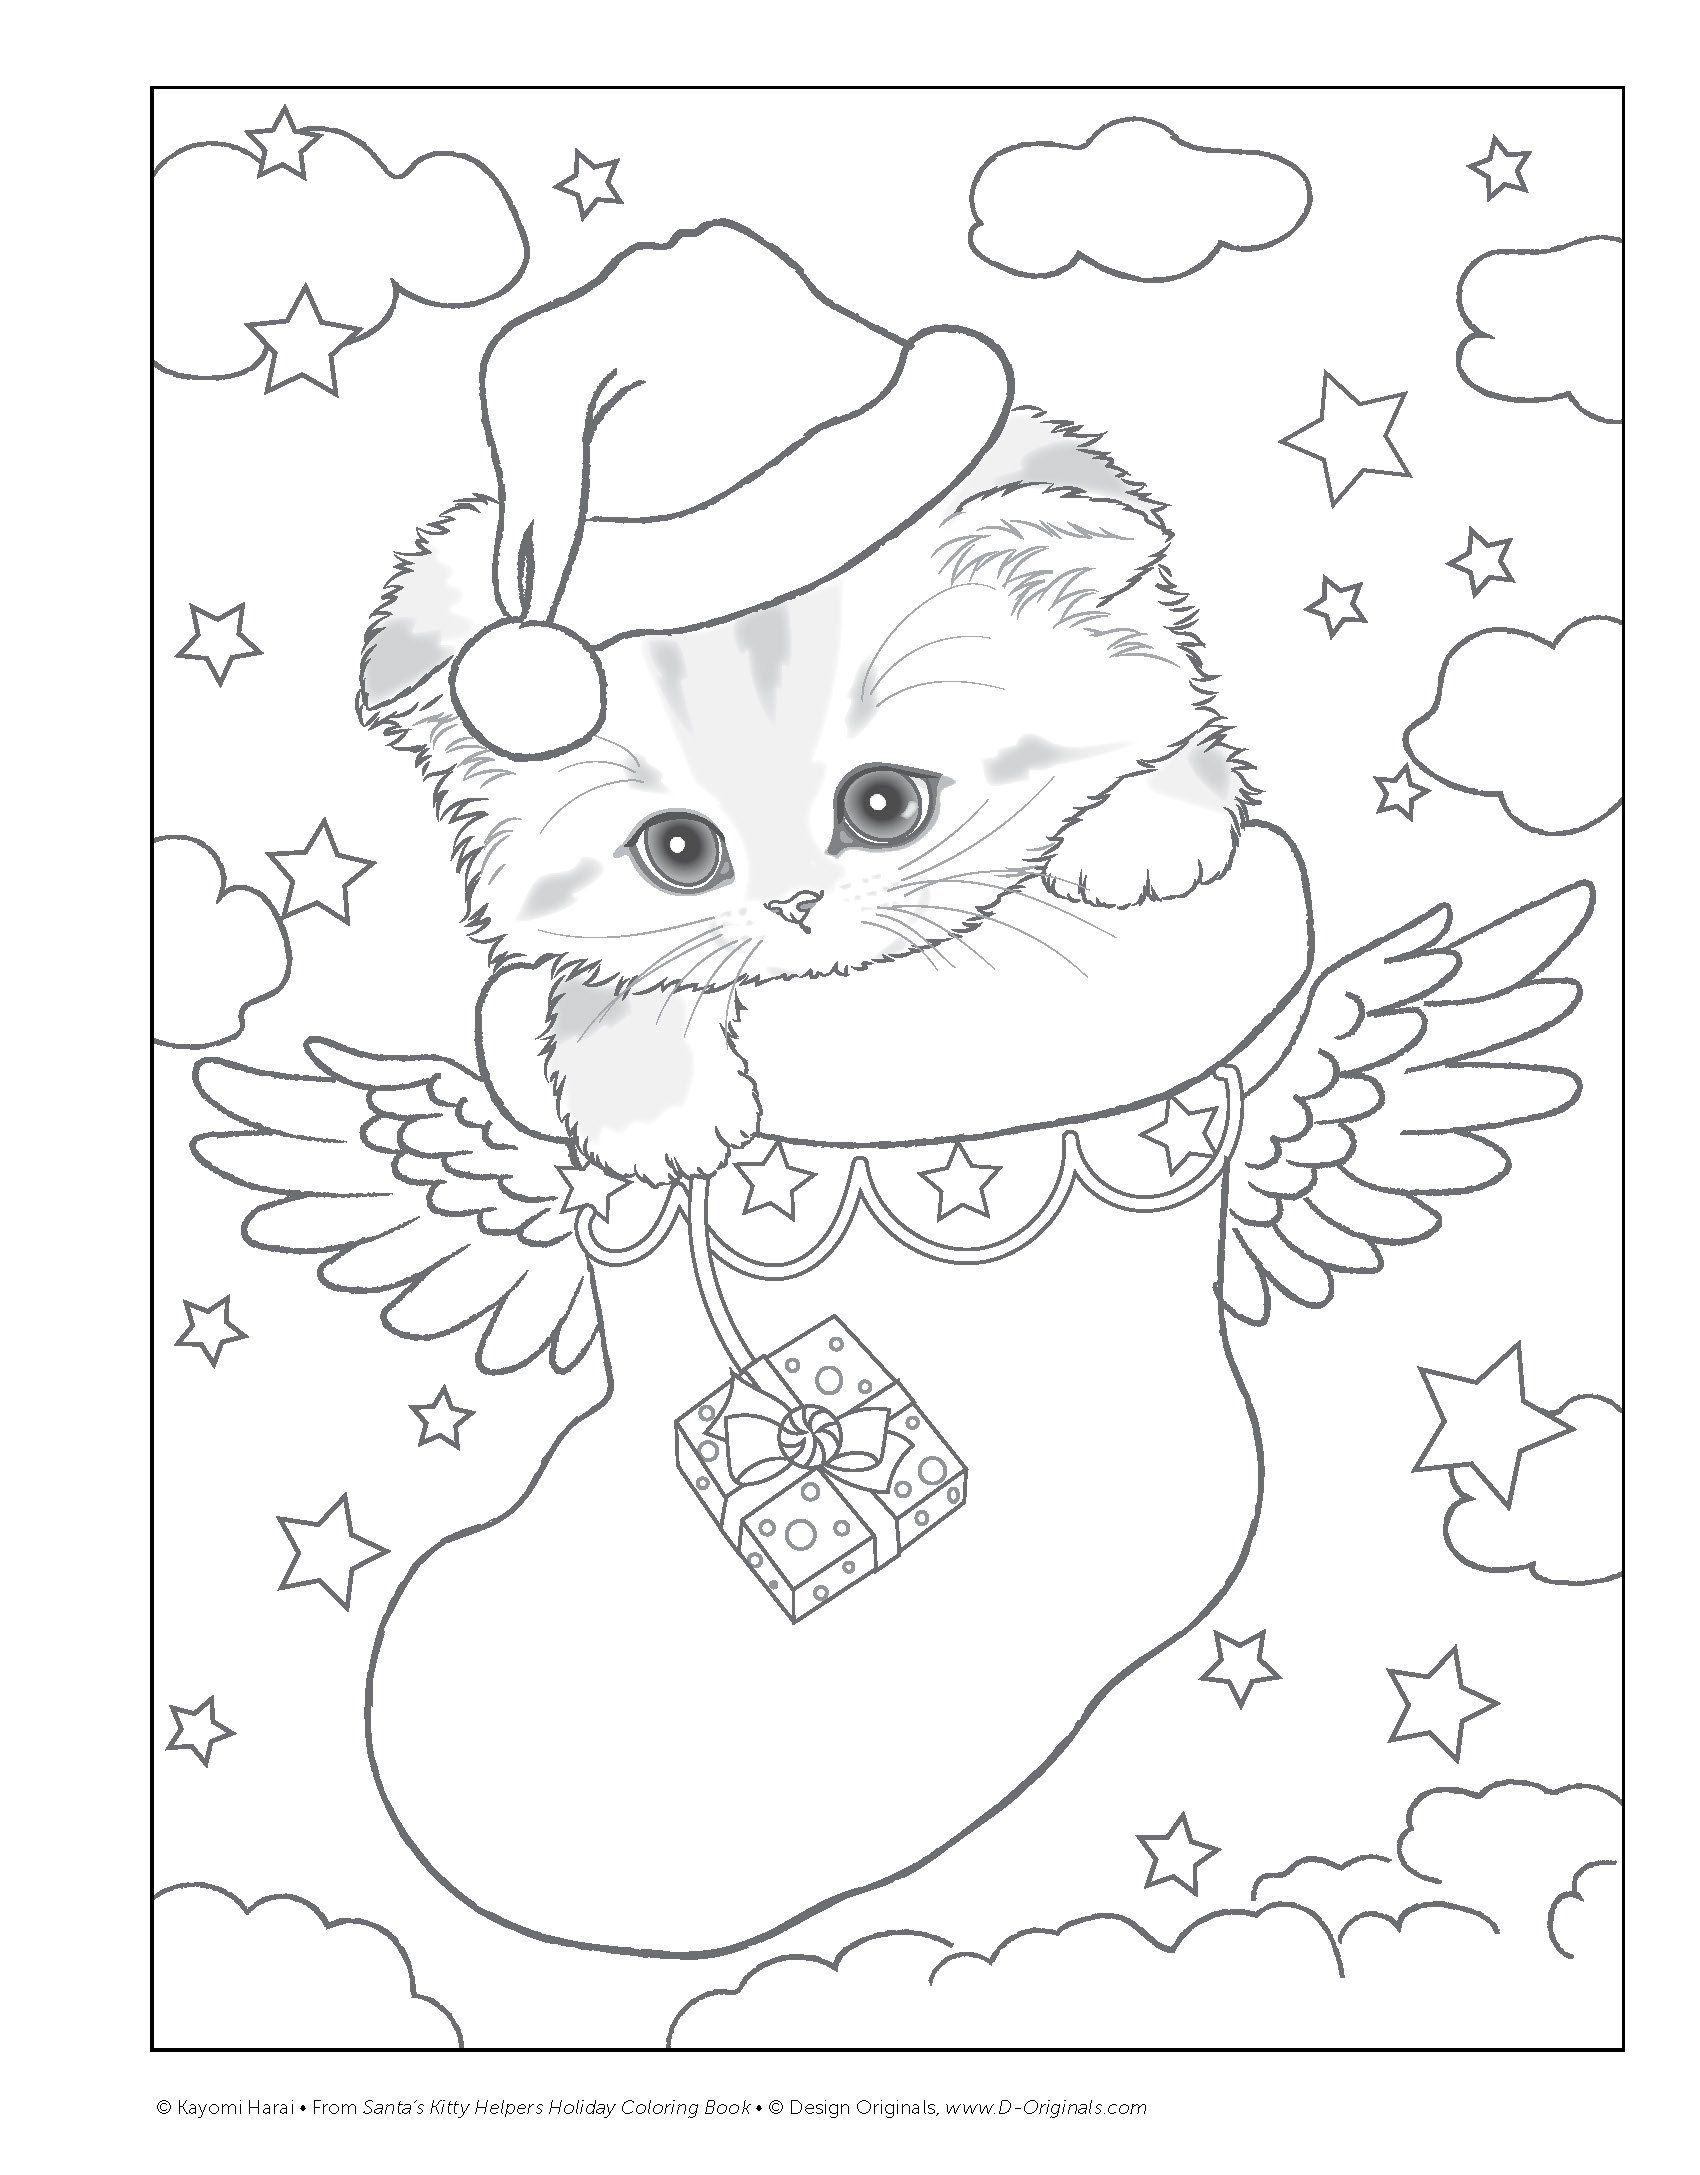 santas kitty helpers holiday coloring book design originals kayomi harai 0023863059121 - Holiday Pictures To Colour